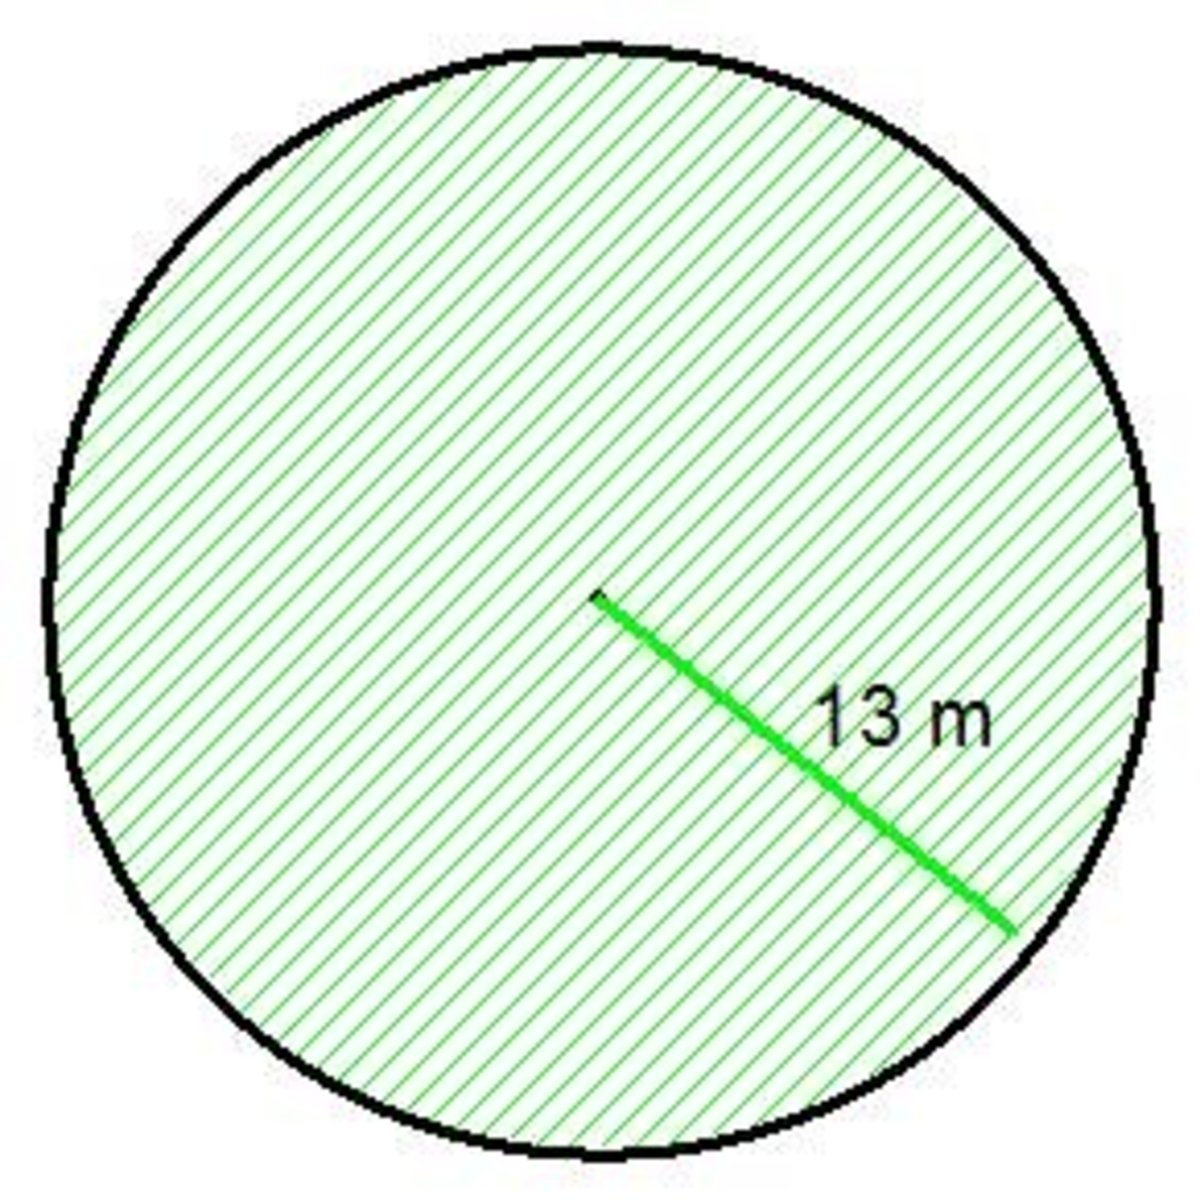 This circular lawn has a radius of 13m, so our answer with be in meters squared.